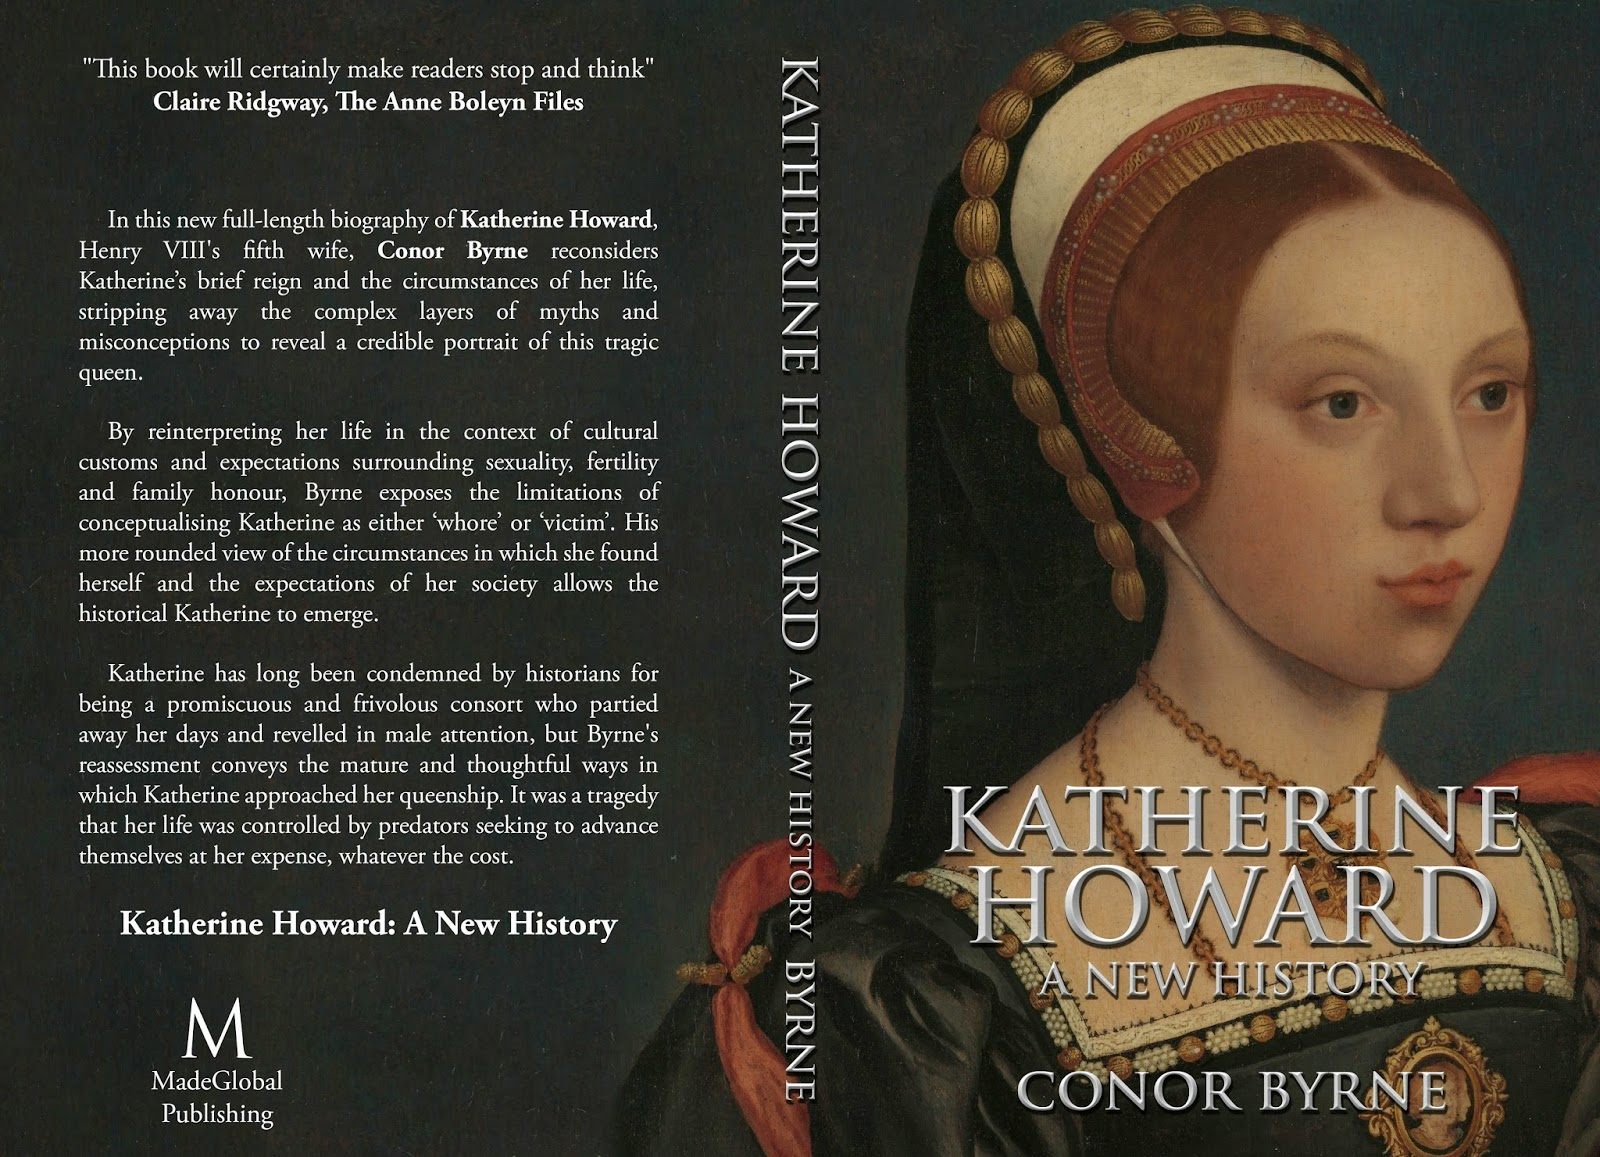 the case against katherine howard essay Kathryn howard was henry the viii's fifth wife she was a teenager when she married the king who was 30 years older than her she had many lovers prior to her marriage, one being francis dereham and another with the king's courtier thomas culpeper.